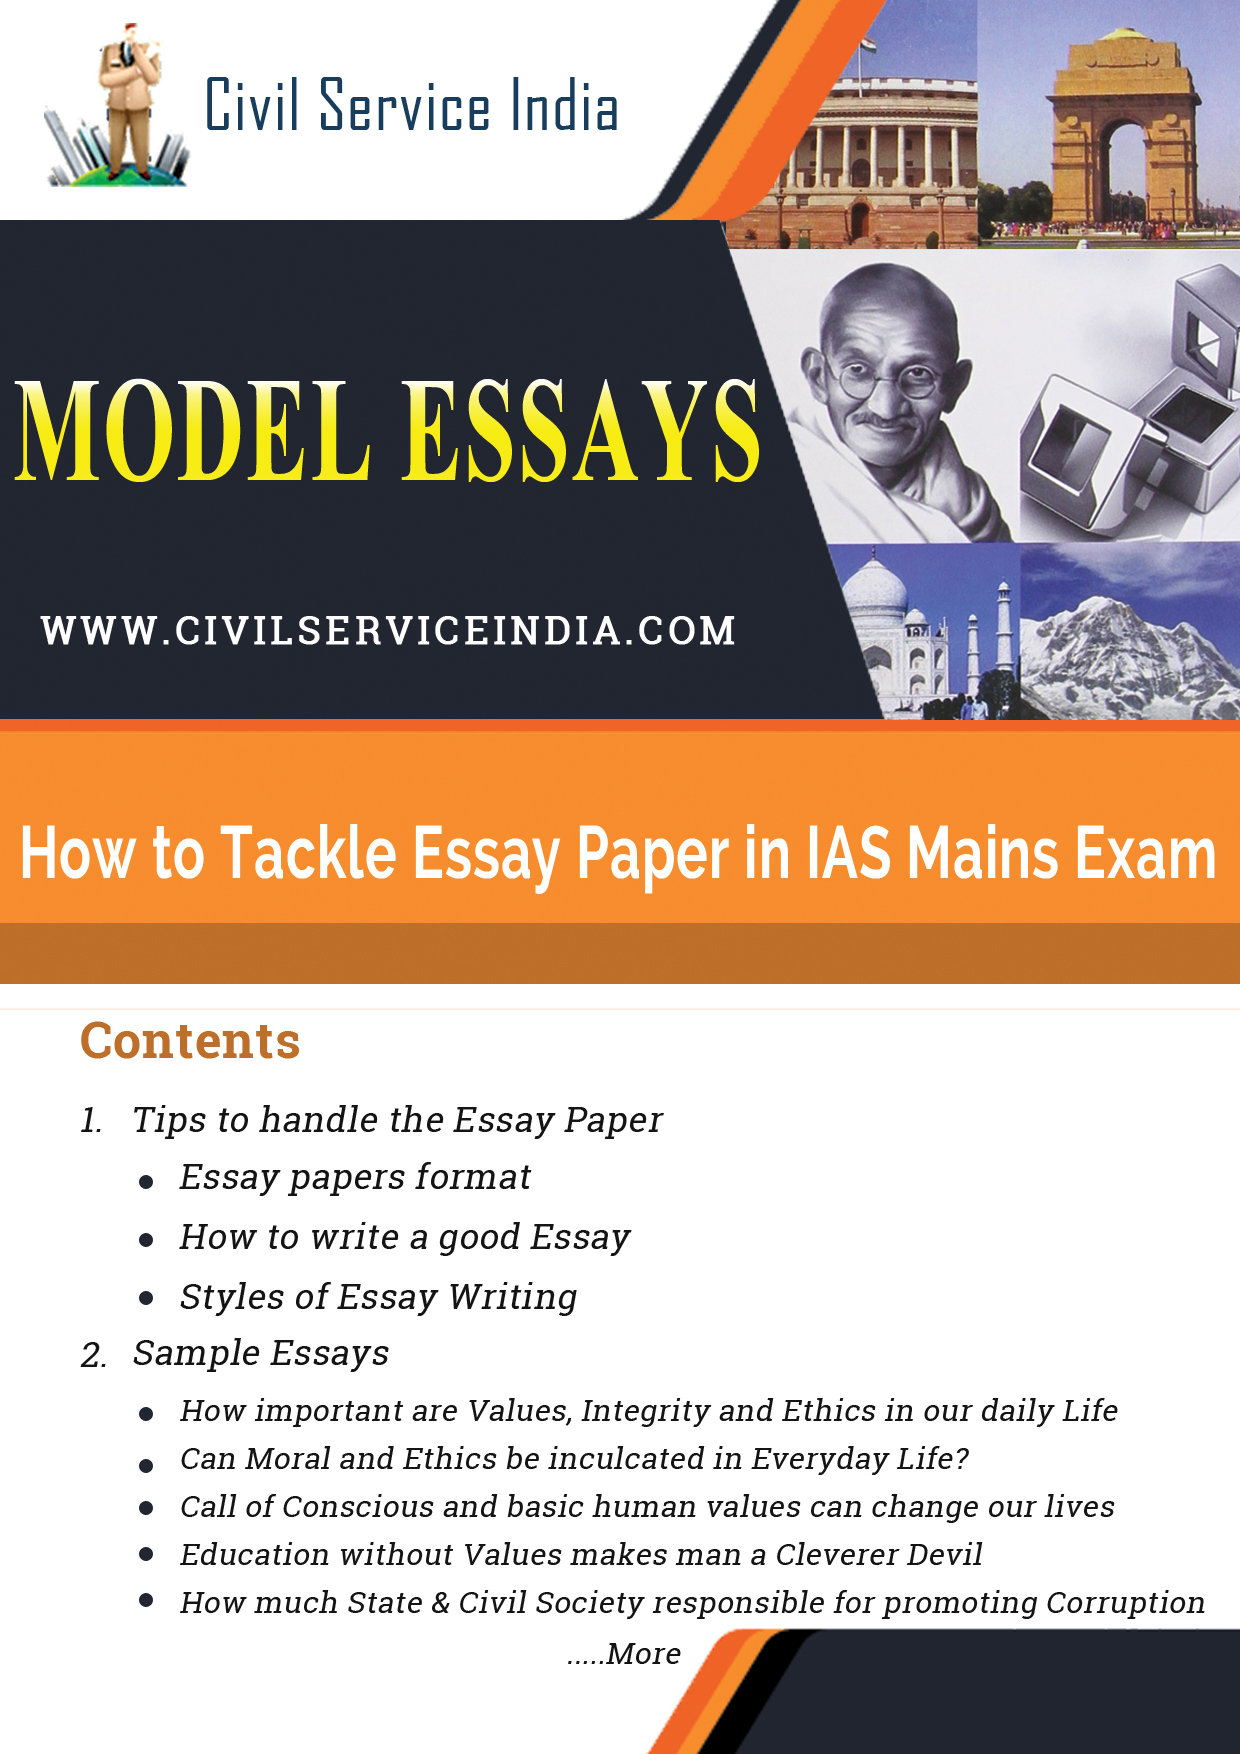 Help in essay writing upsc